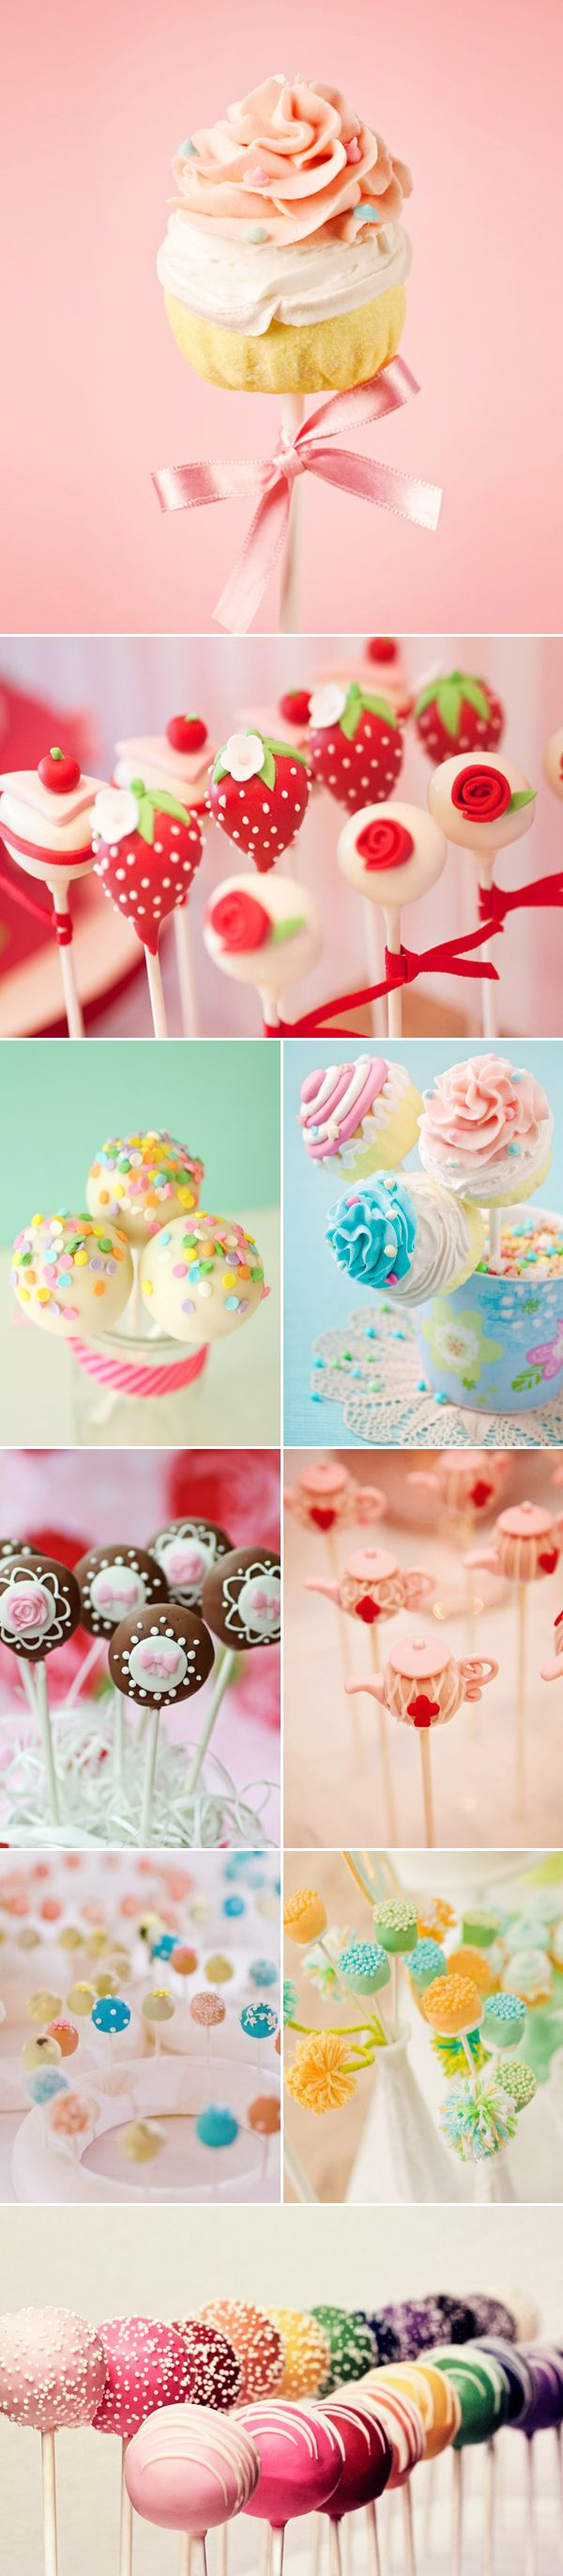 Some say cake pops are the new cupcake, and they seem to be everywhere you look. They are taking over food blogs, and replacing cupcakes at weddings. A cake pop is essentially cake, crumbled and mixed with frosting, formed into a ball, popped on a stick, and dipped in a sweet candy coating. They are …